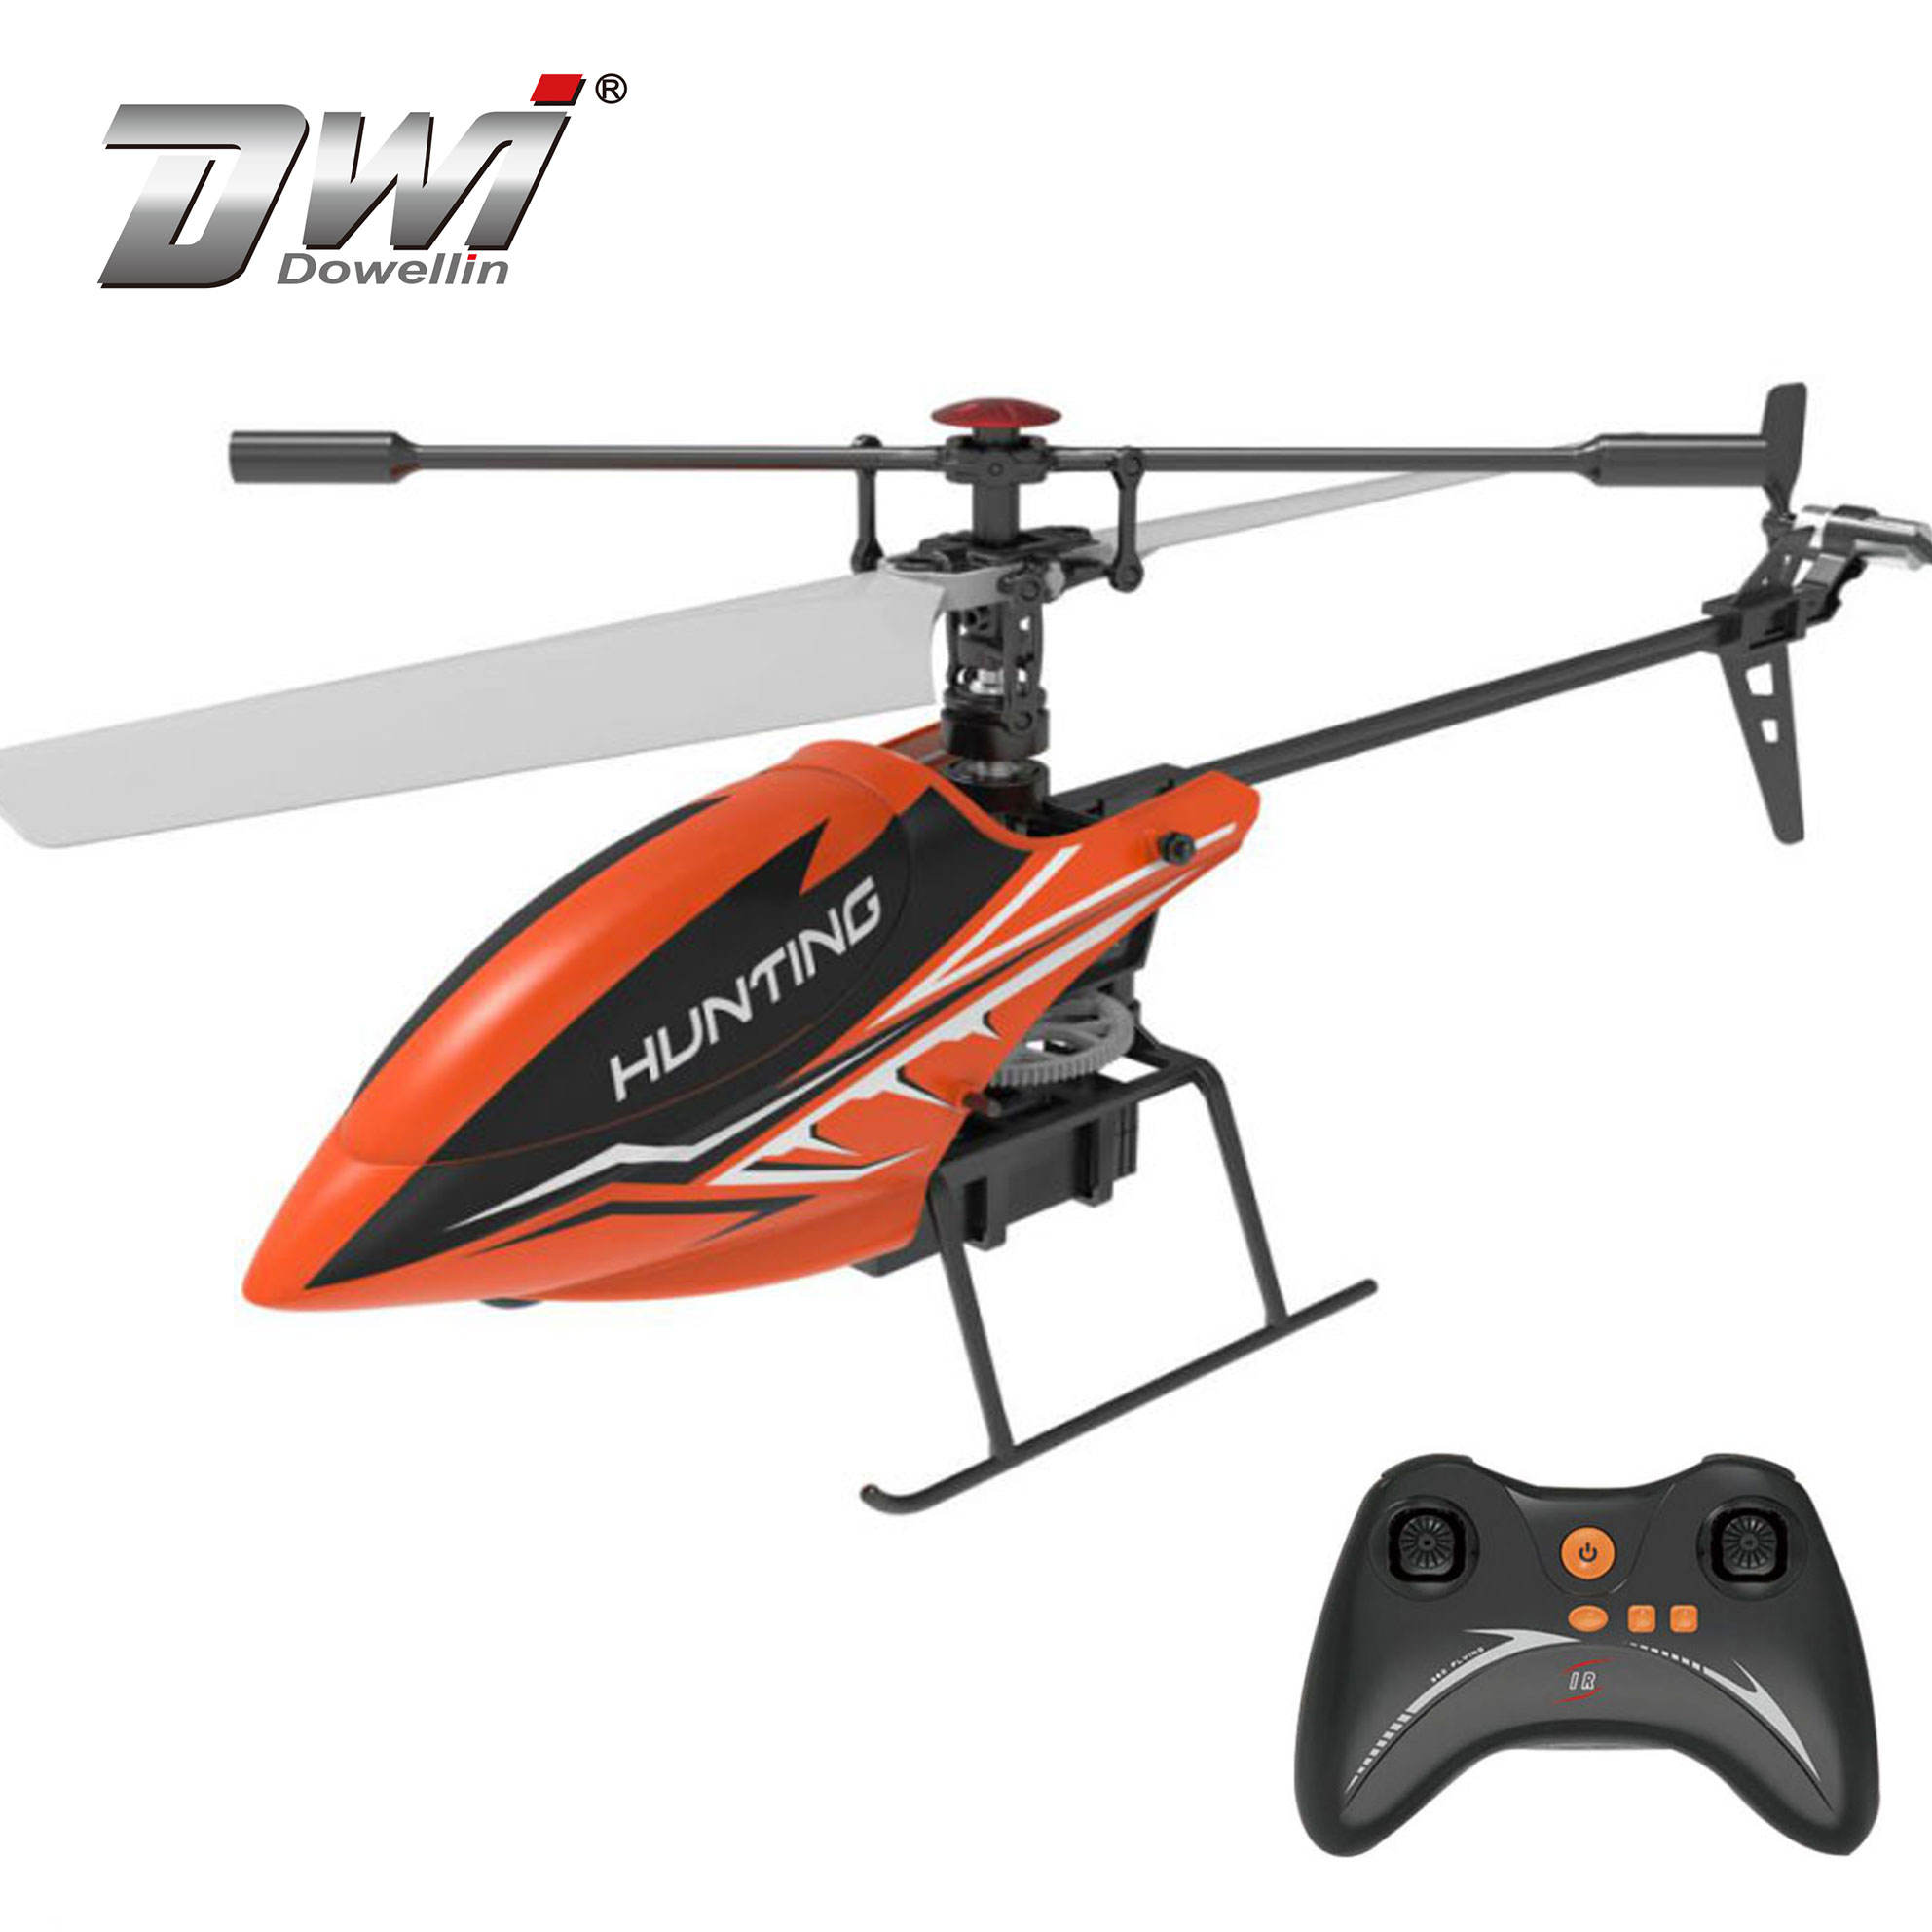 DWI Dowellin 2.4G Hoverable Single Pulp 2 Channel Helicopter Model With One Key Takeoff